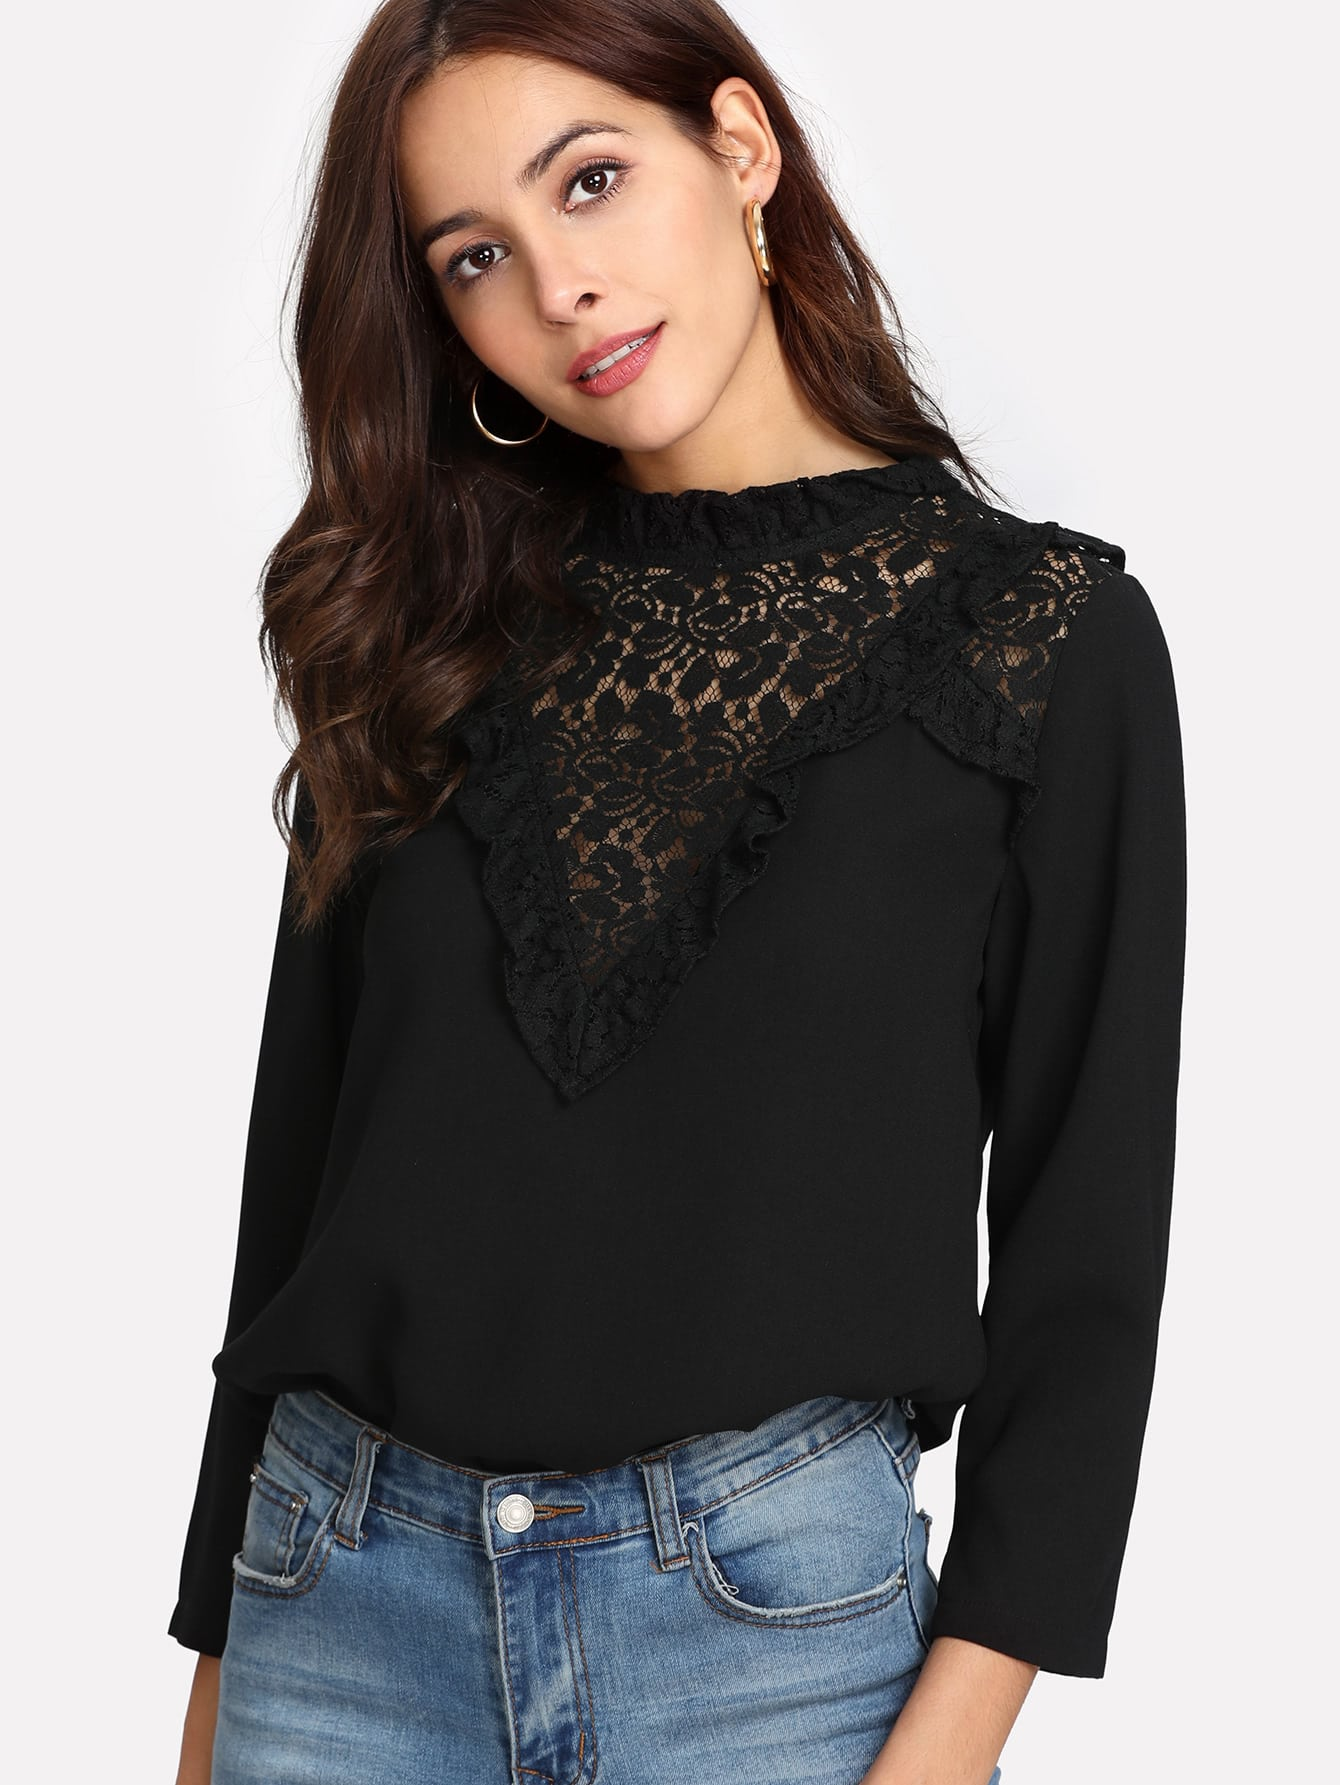 Sheer Lace Neck Frilled Top tie neck sheer lace top